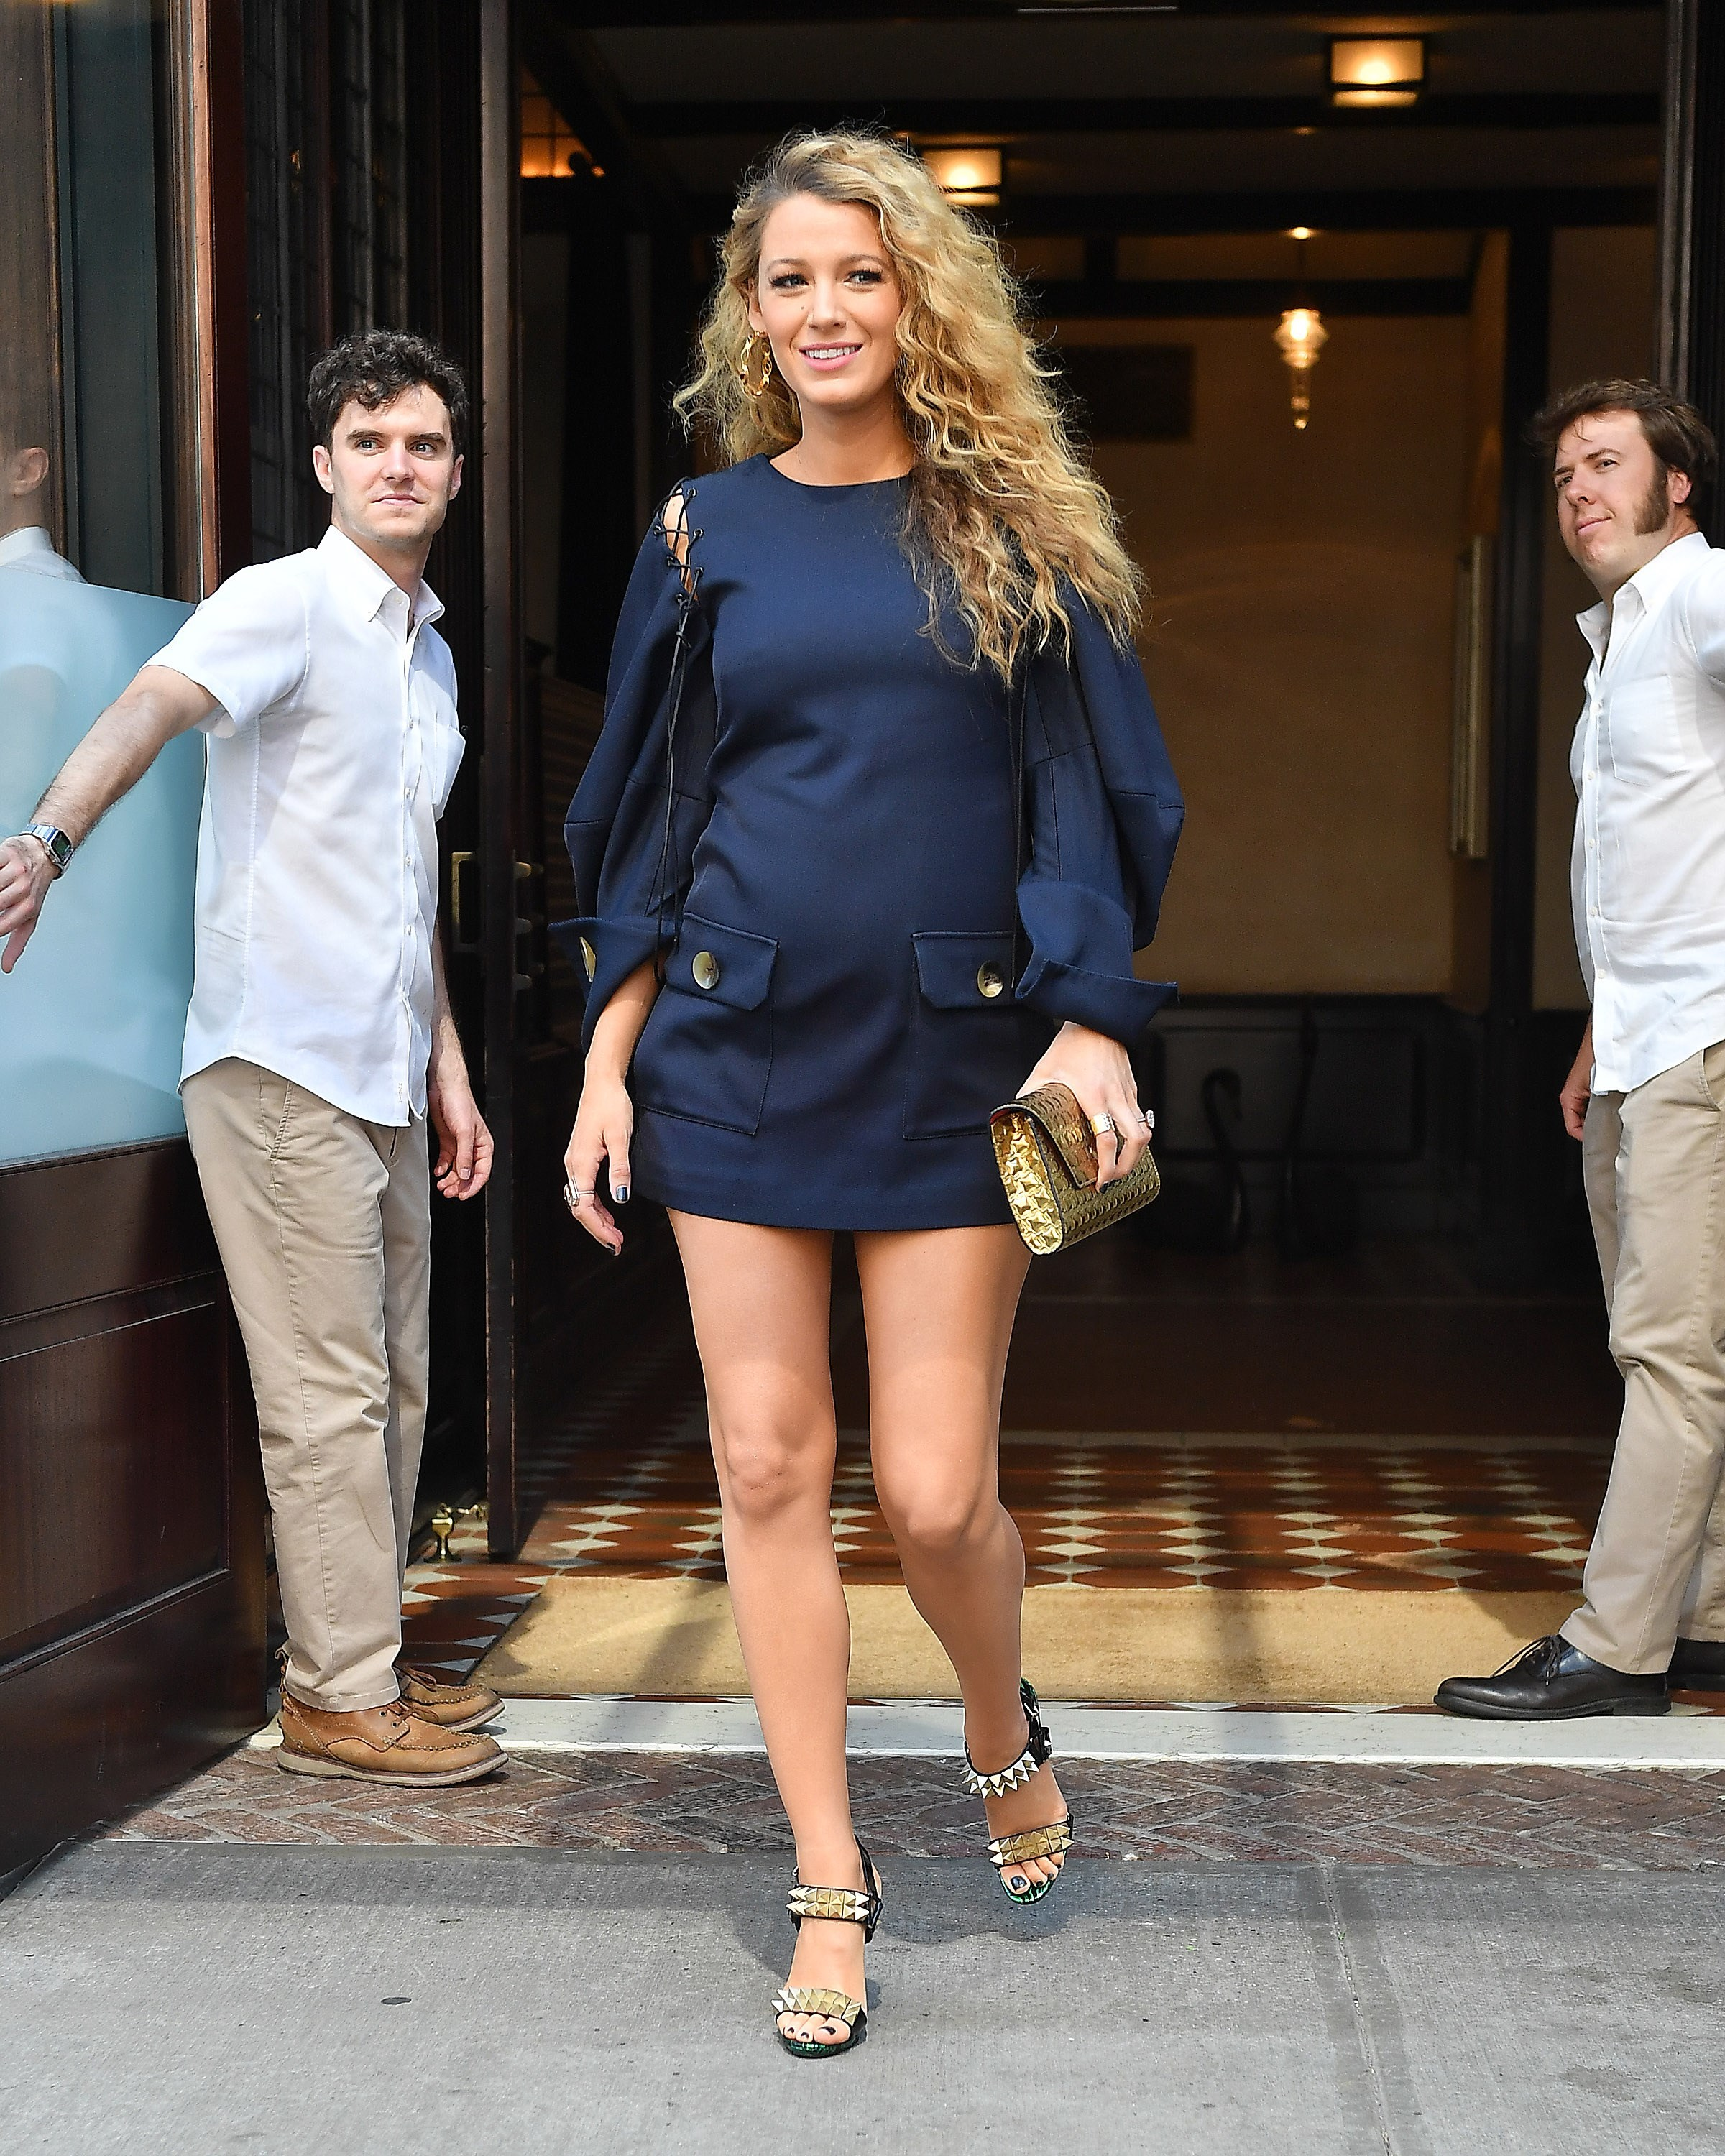 Some of Blake Lively's 'Shallows' injuries were real